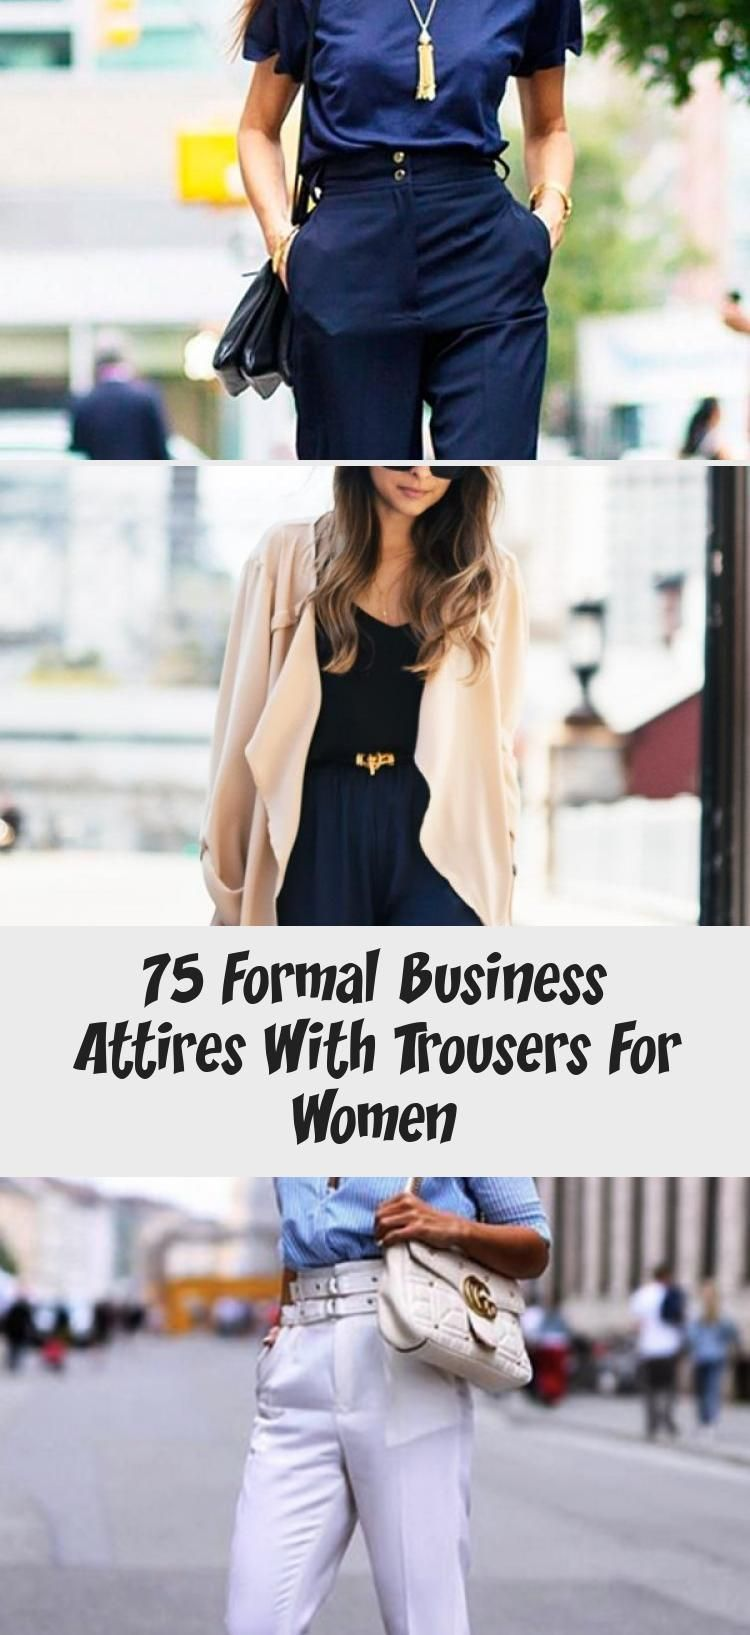 75 Formal Business Attires With Trousers For Women - Fashion